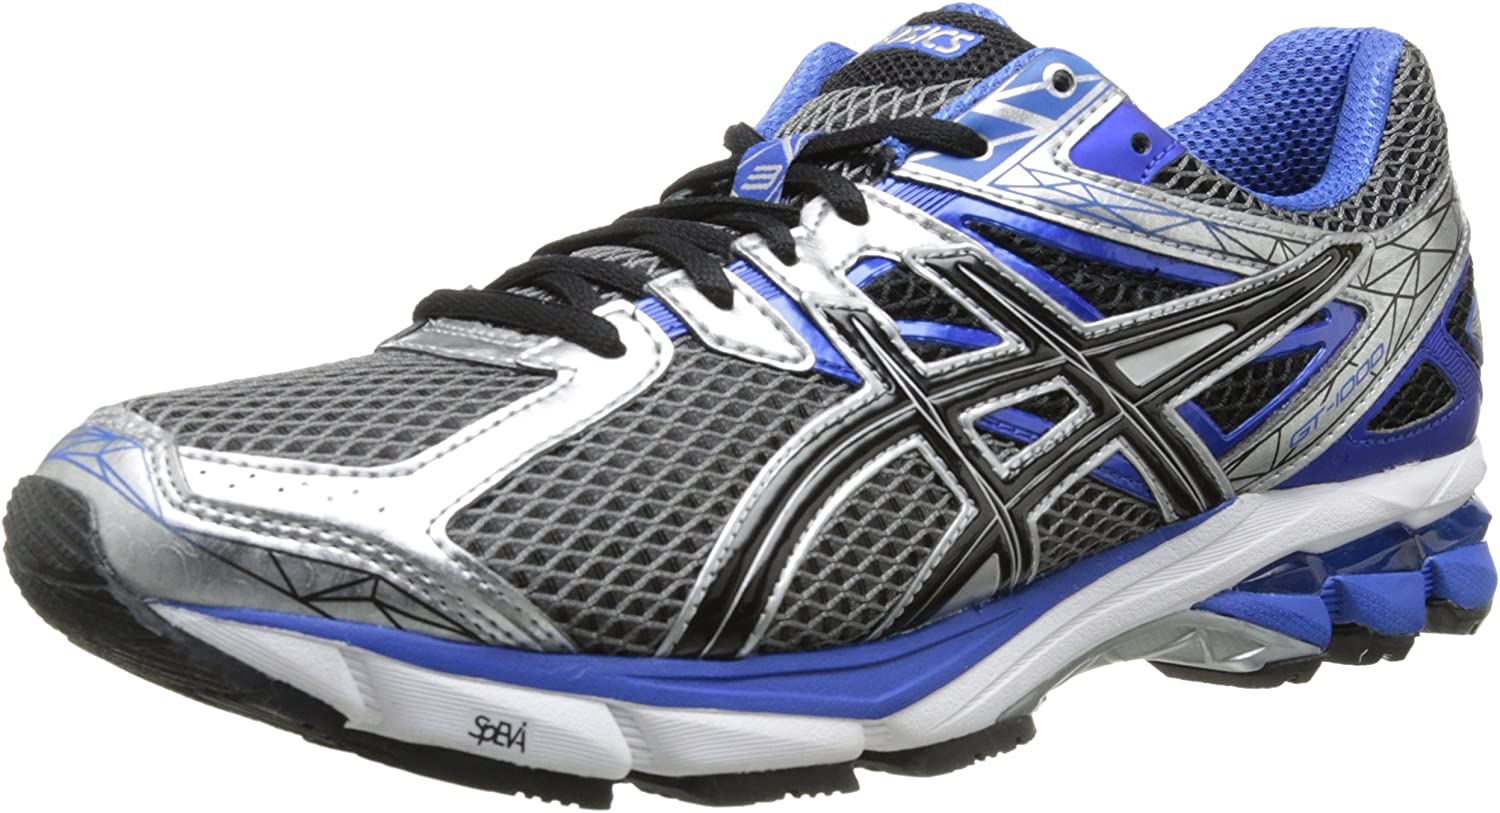 ASICS Men's GT-1000 3 Synthetic Running shoes